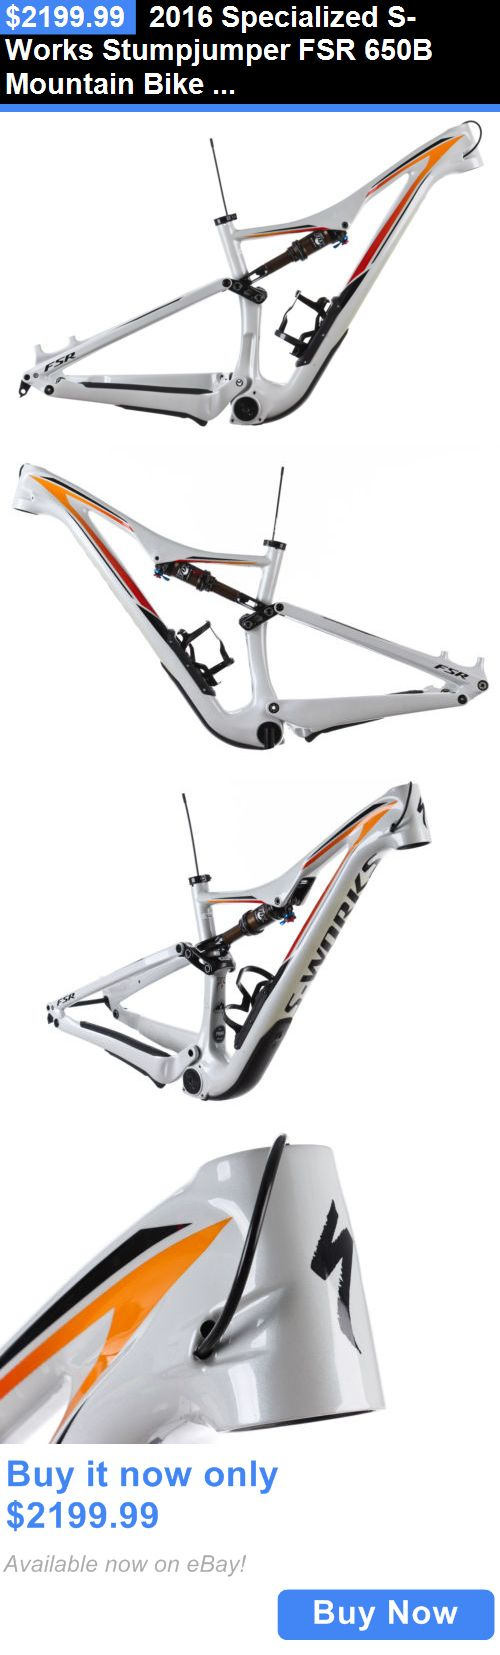 bicycle parts: 2016 Specialized S-Works Stumpjumper Fsr 650B Mountain Bike Frame Small 27.5 BUY IT NOW ONLY: $2199.99